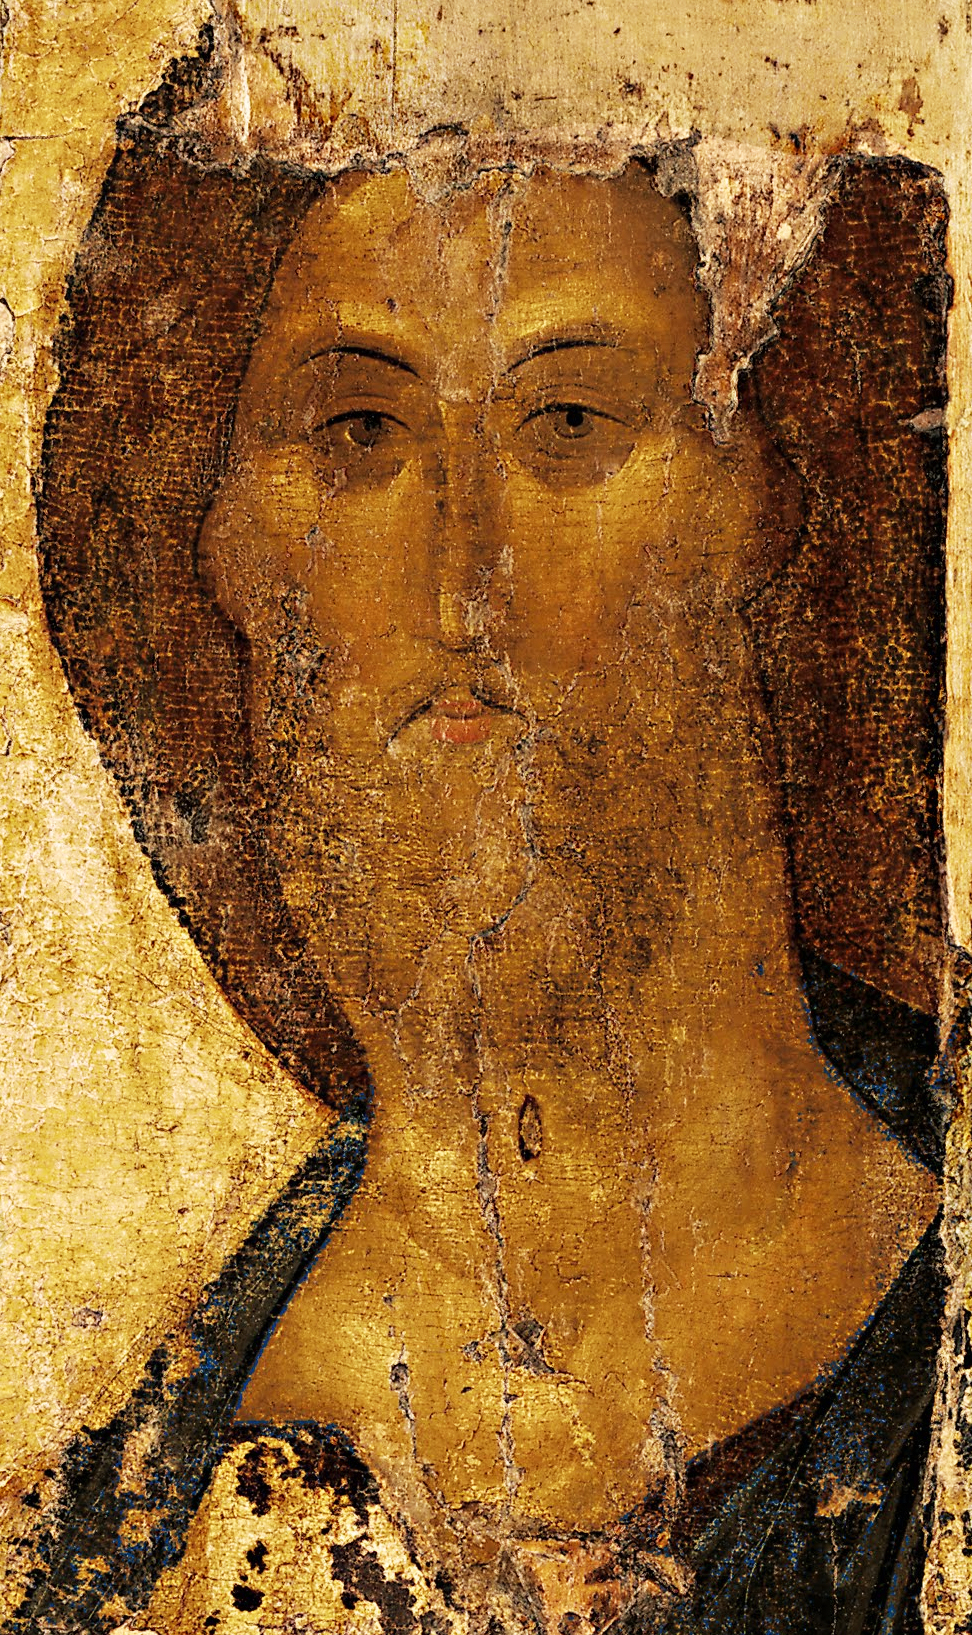 https://upload.wikimedia.org/wikipedia/commons/8/84/Rublev%27s_saviour.jpg